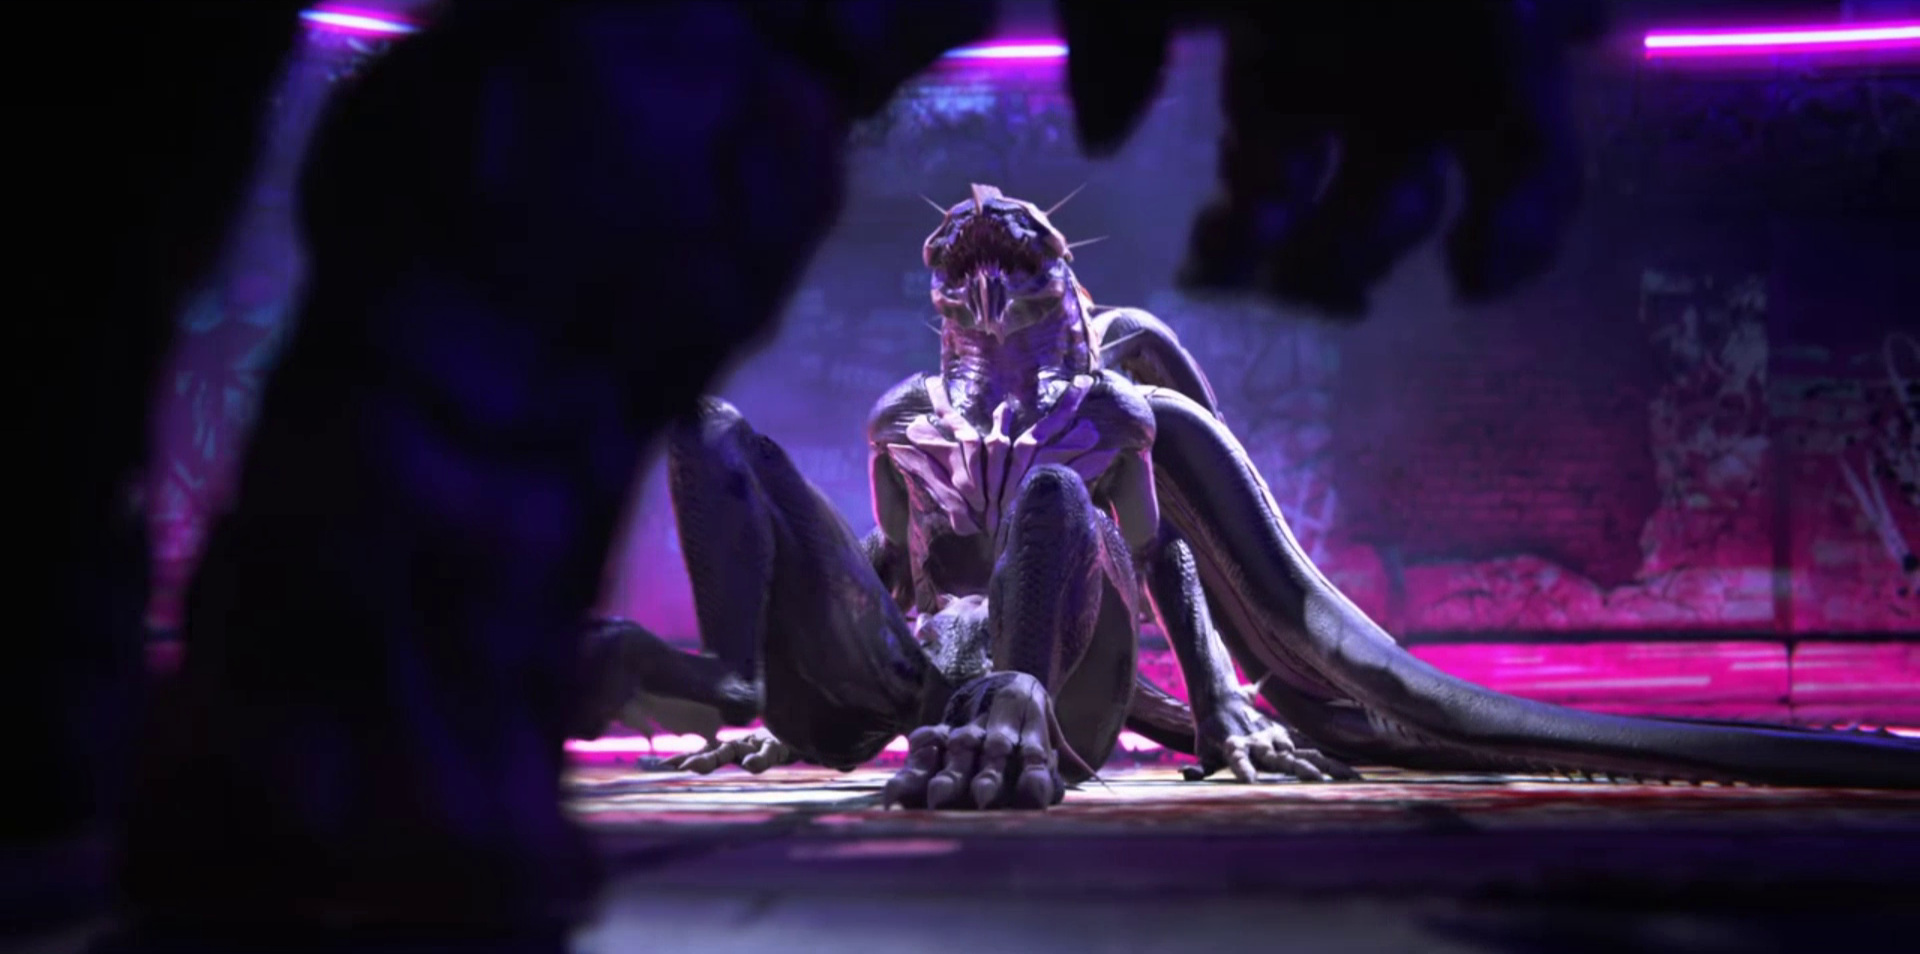 """Sonnie's Edge,""  Love Death + Robots  (Netlfix, 2019), predatory stalking, with Khanivore on the ground"